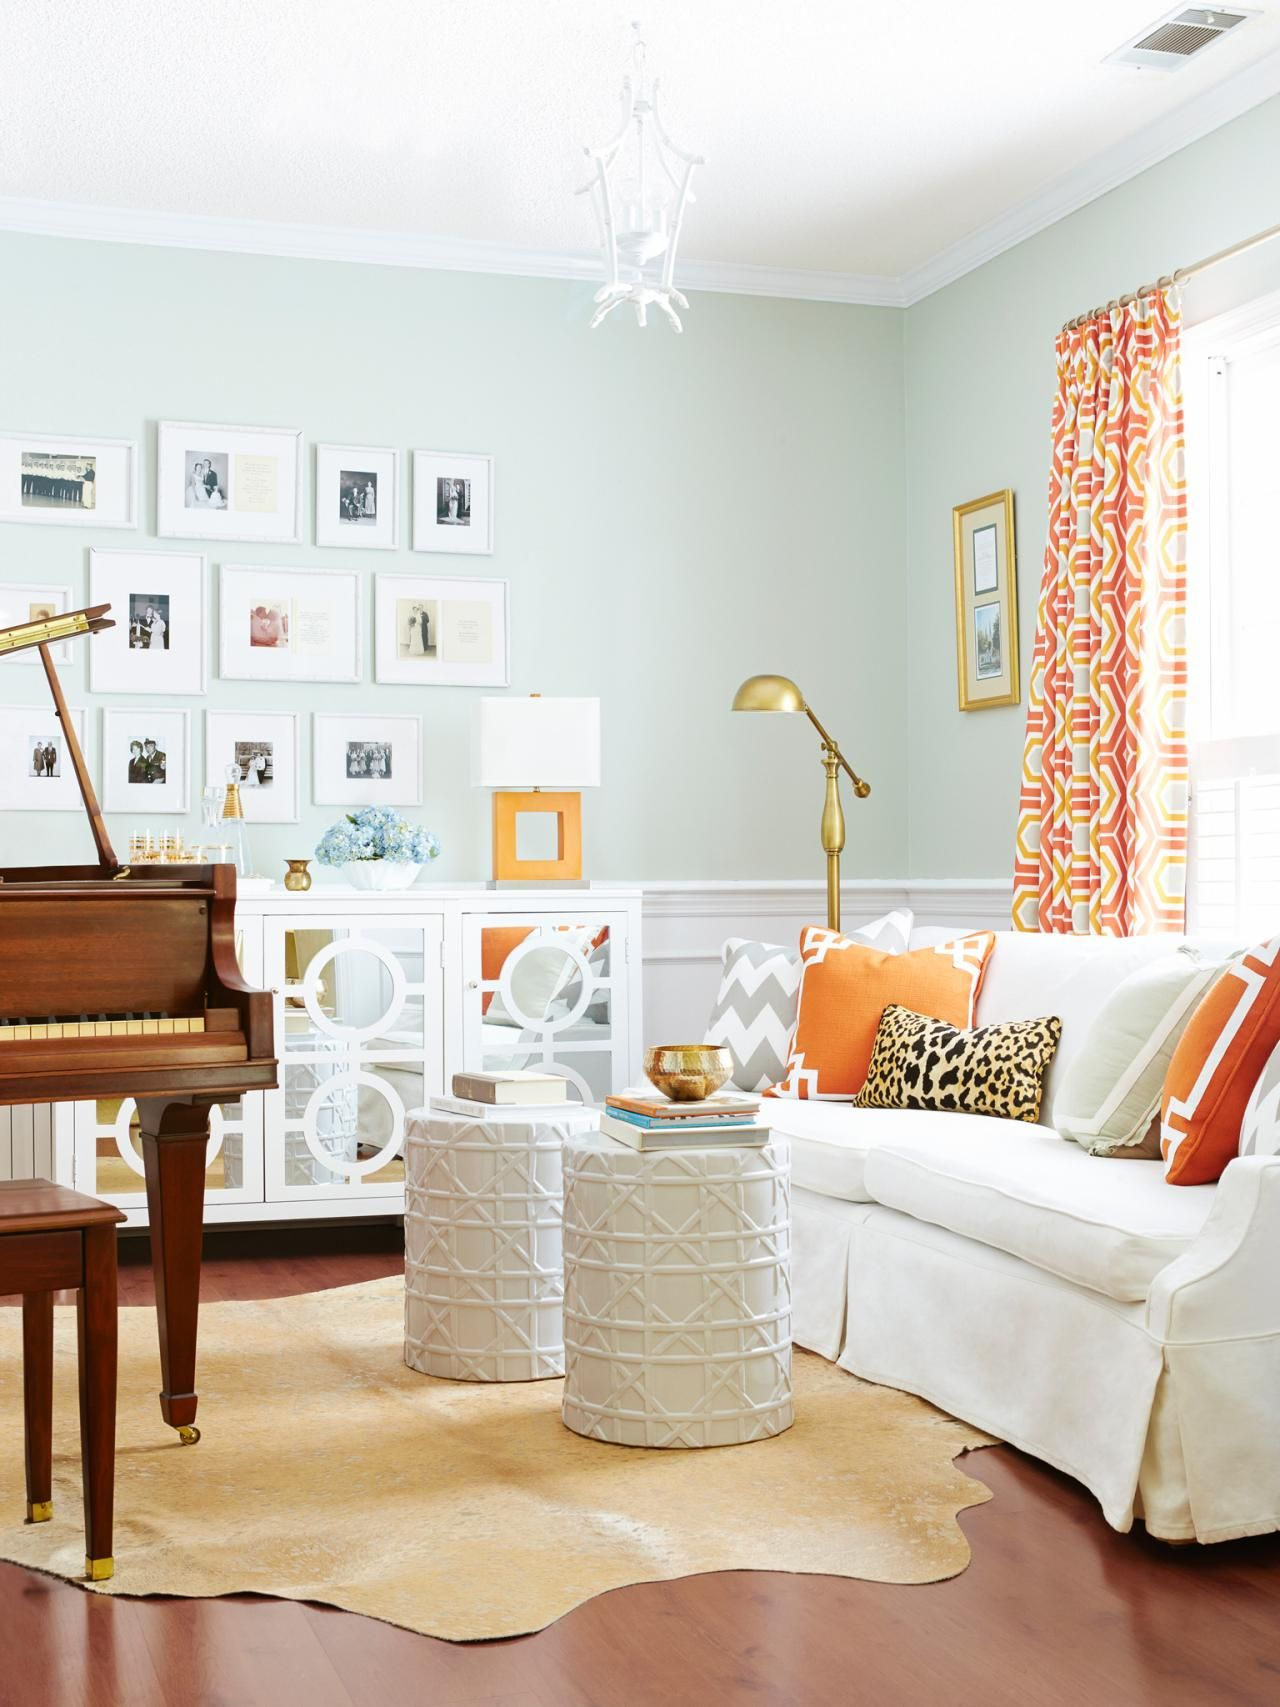 Quirky And Clic Perfectly Hgtvmagazine Http Www Hgtv Design Decorating 101 A Spin On Pictures Soc Pinterest